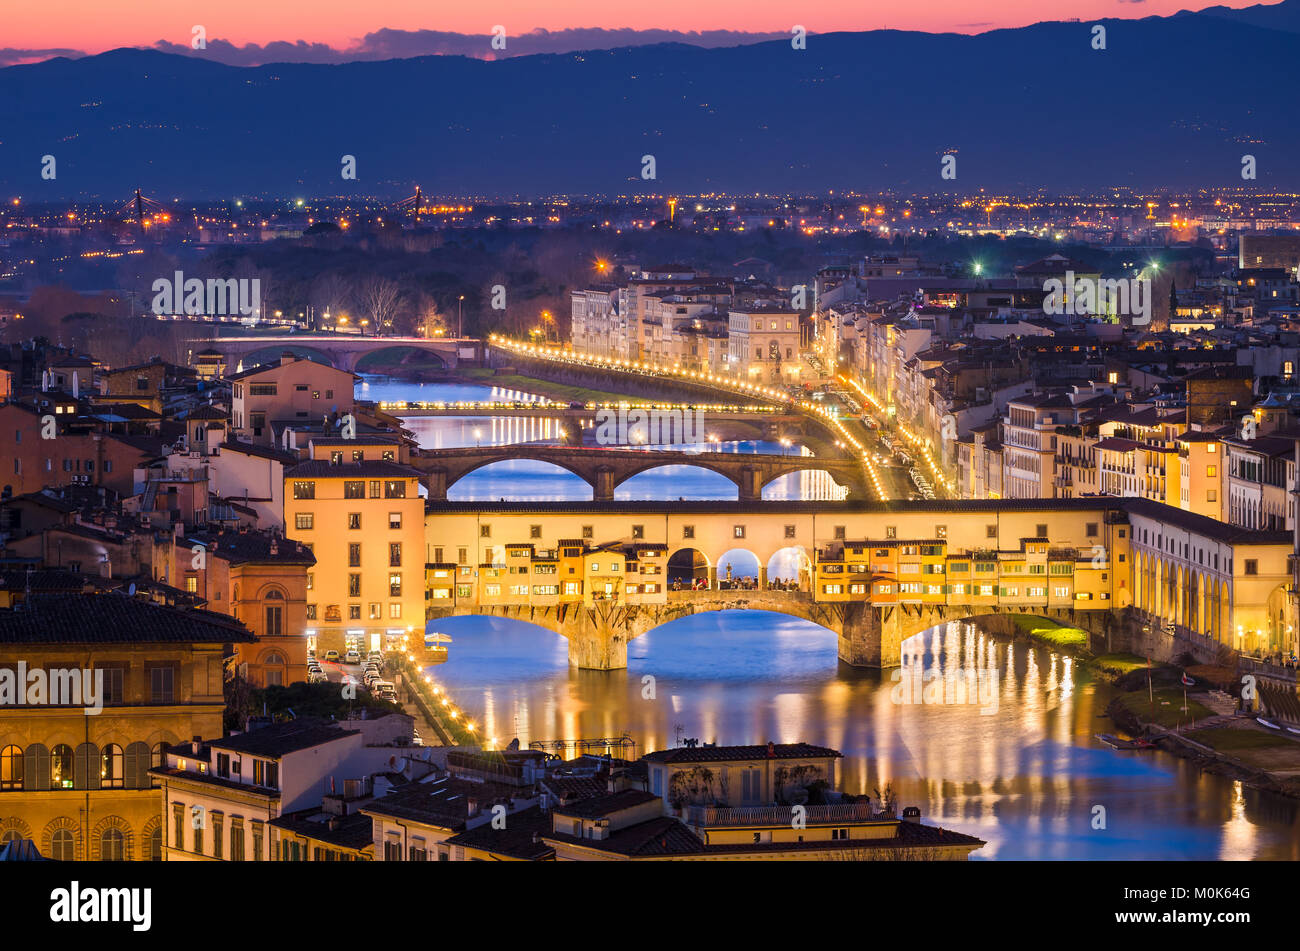 Night skyline of Florence, Italy with Ponte Vecchio - Stock Image